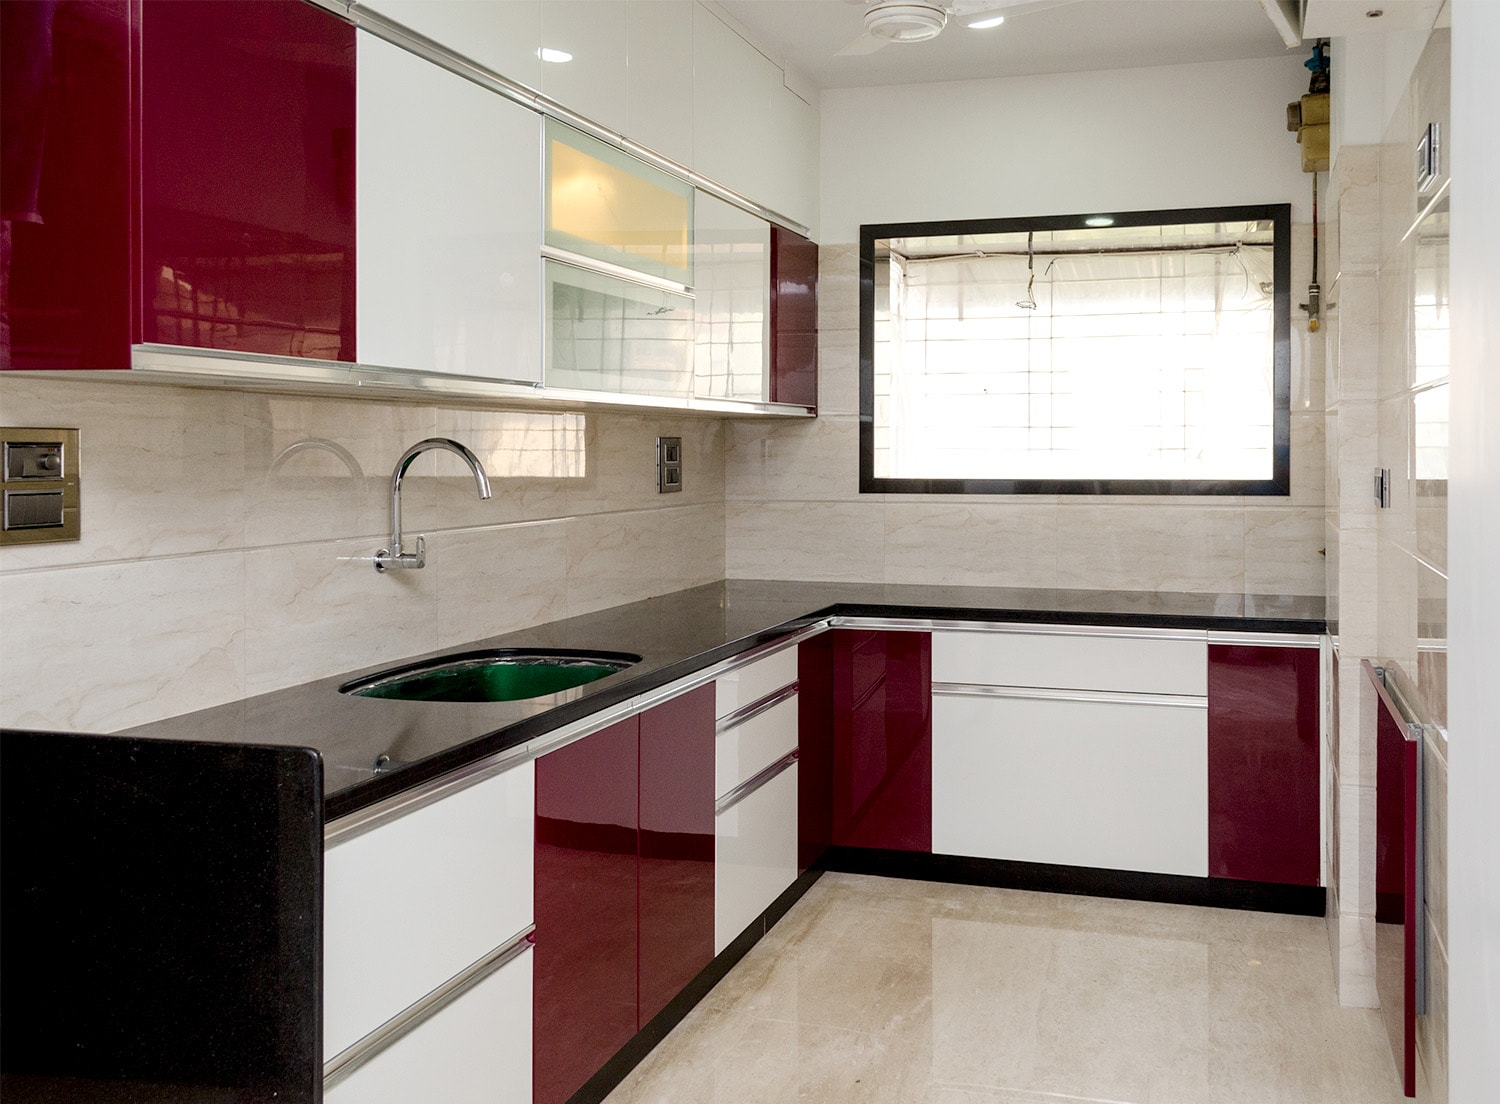 Home interiors by homelane modular kitchens wardrobes storage units design services Kitchen design mumbai pictures